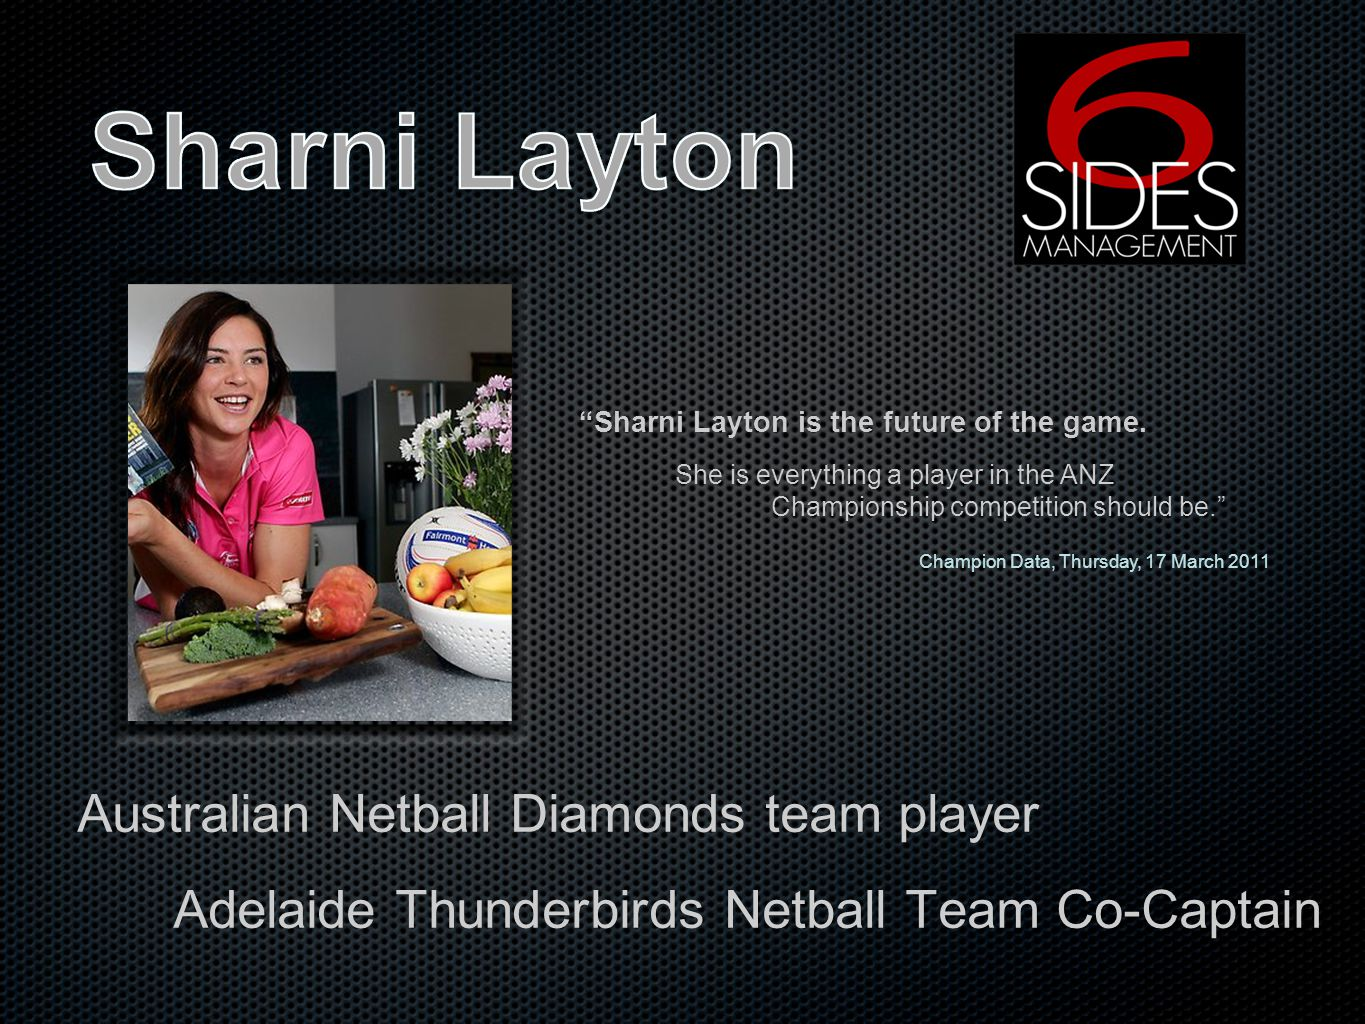 Australian Netball Diamonds team player Adelaide Thunderbirds Netball Team Co-Captain Sharni Layton is the future of the game. She is everything a pla